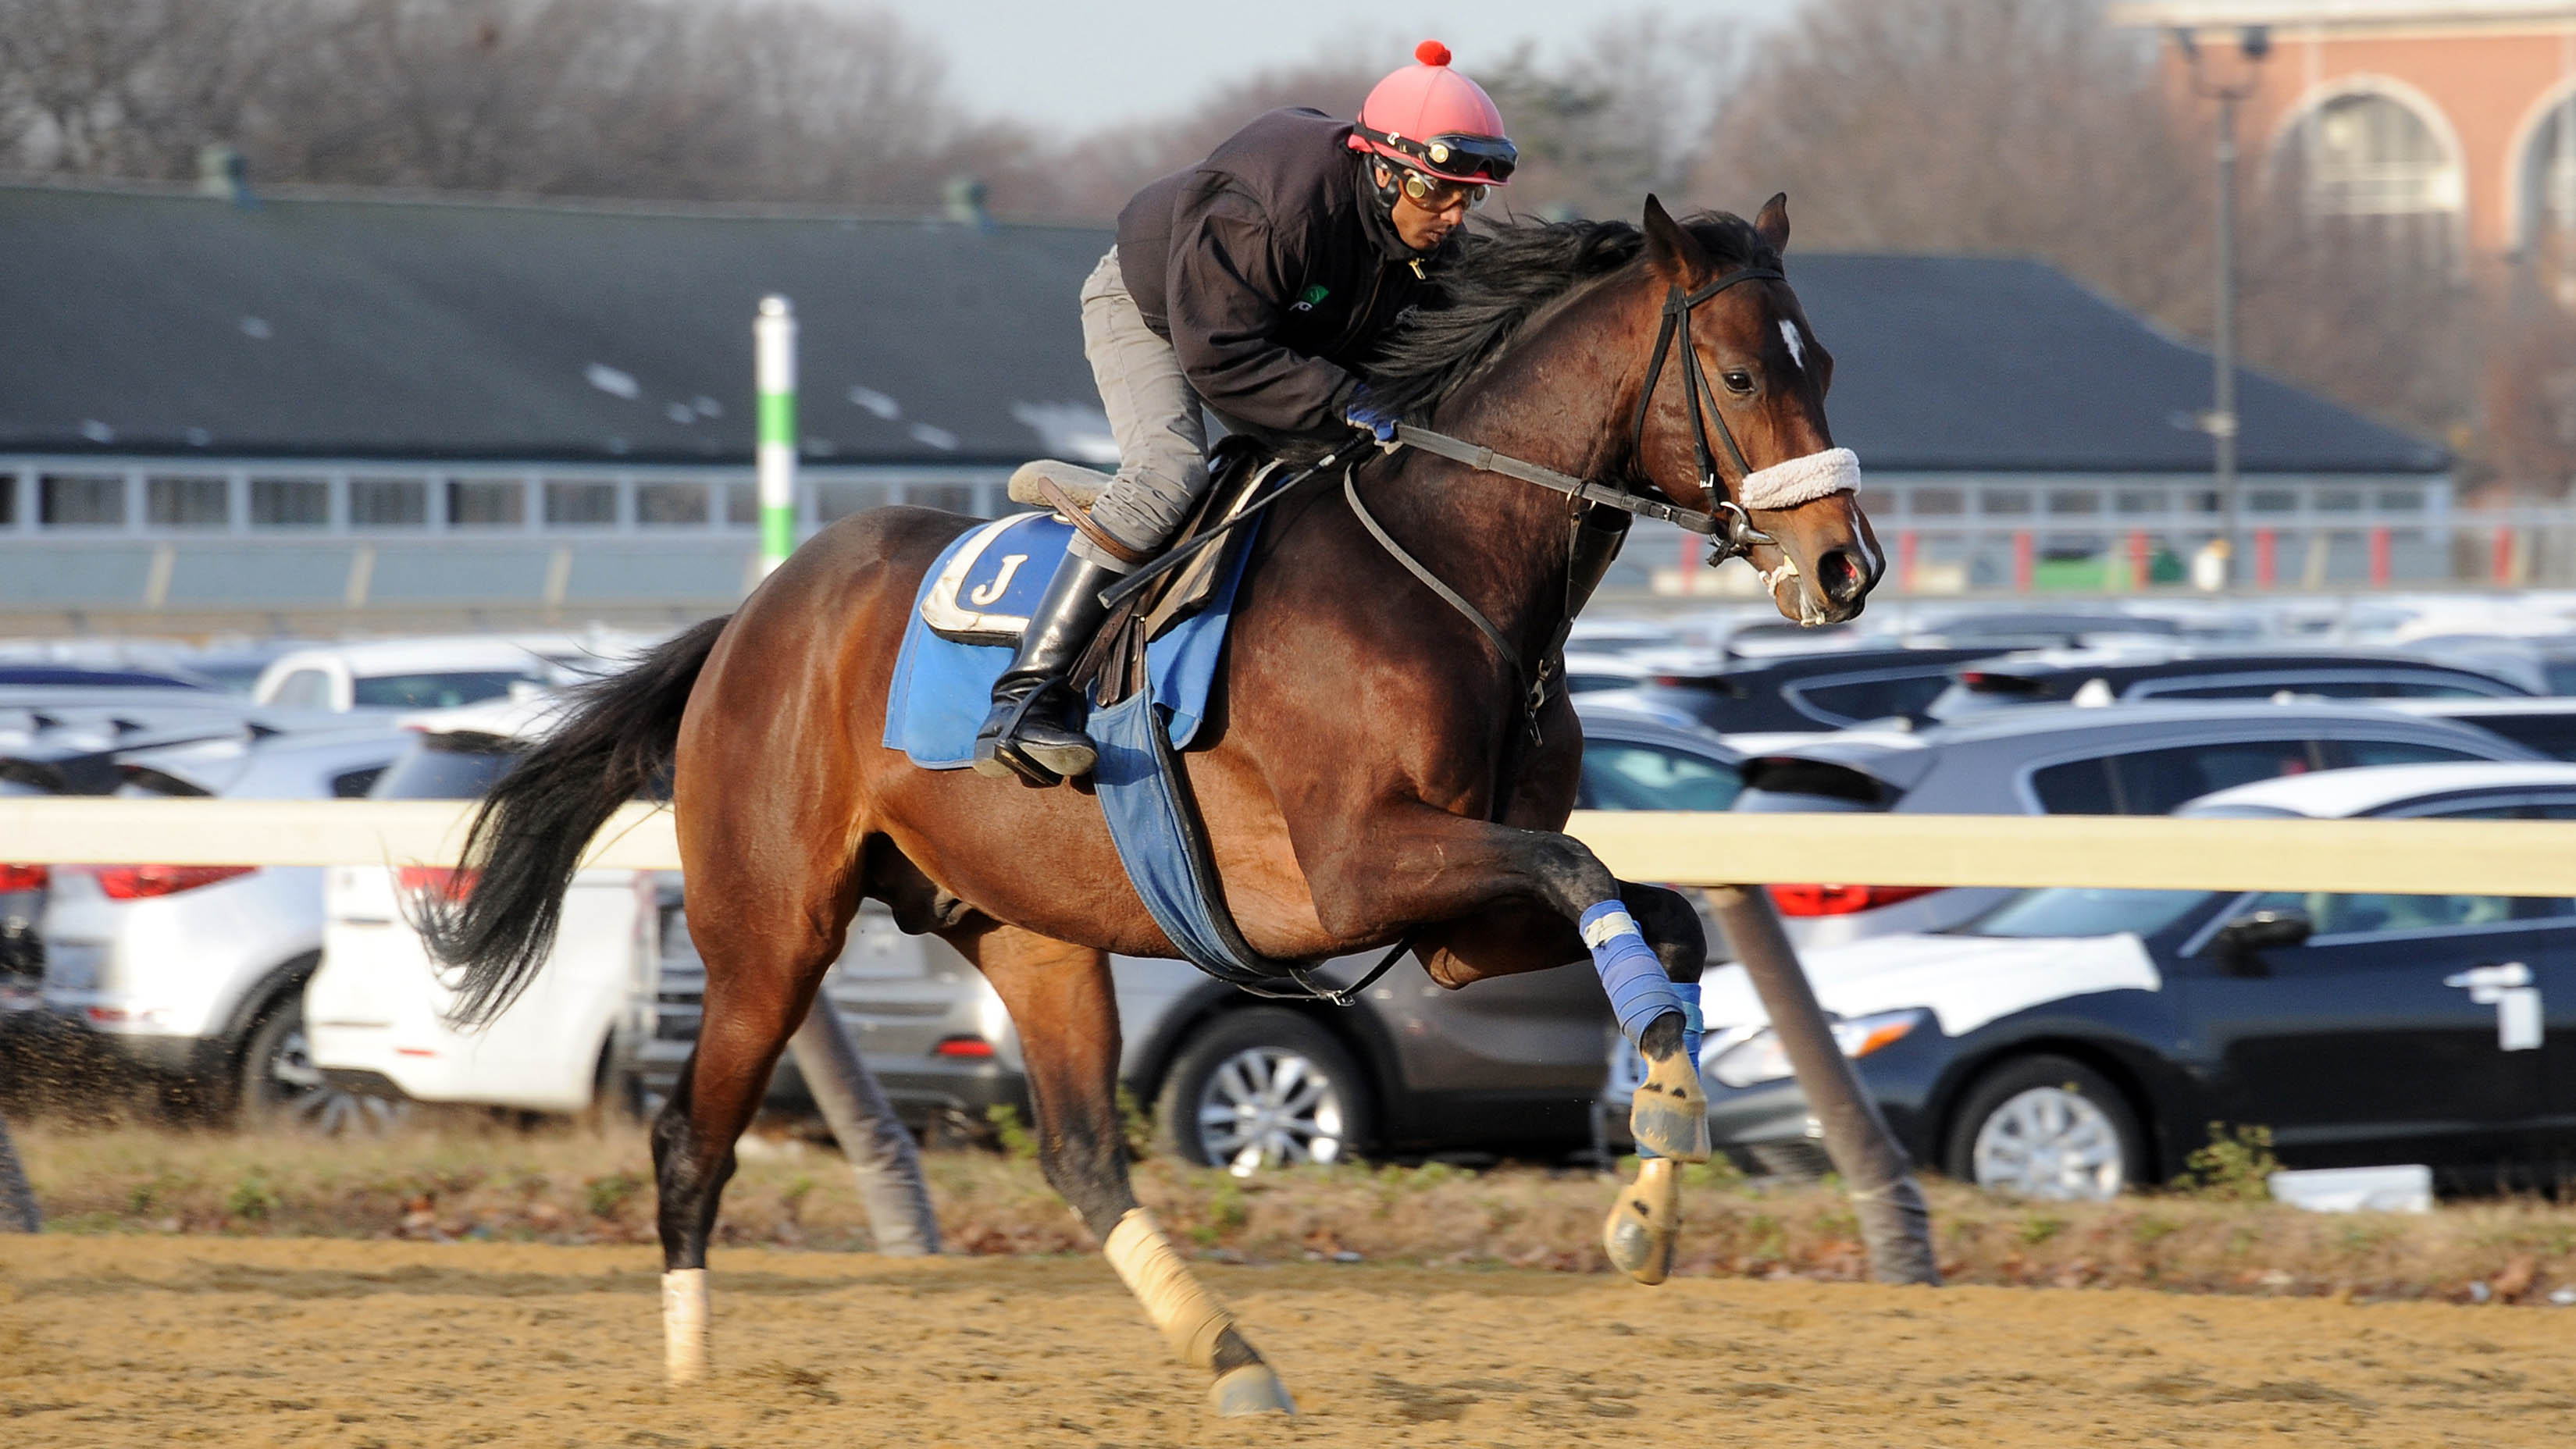 Czech Rate galloping at Belmont Park.